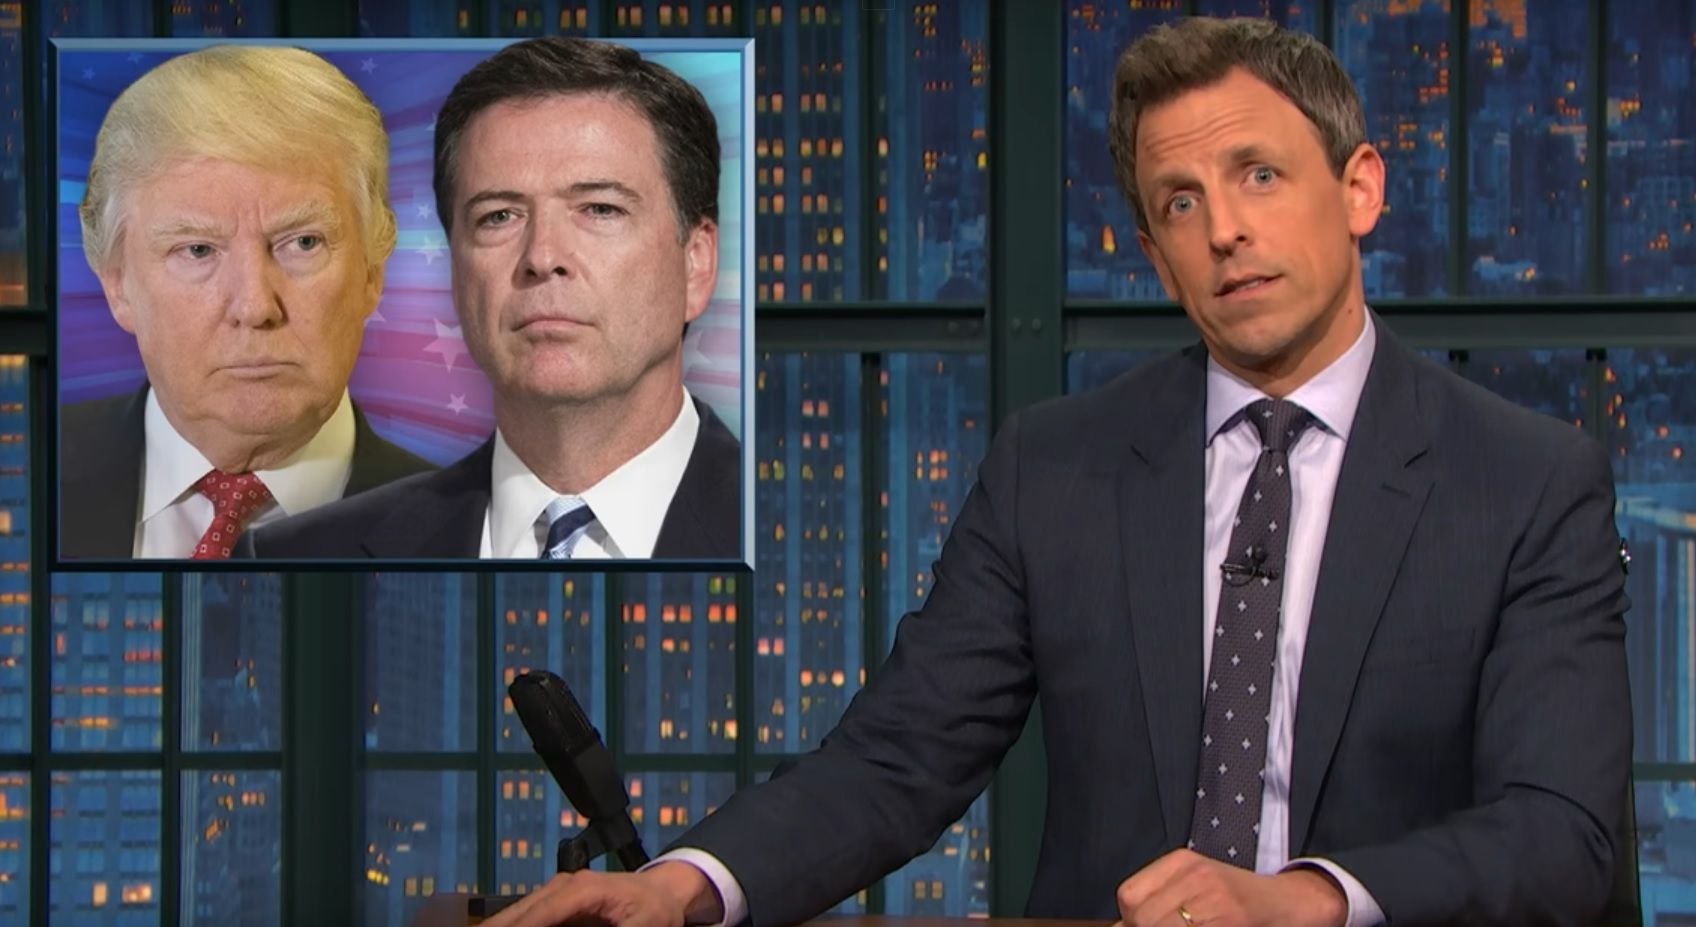 Seth Meyers on Donald Trump and James Comey